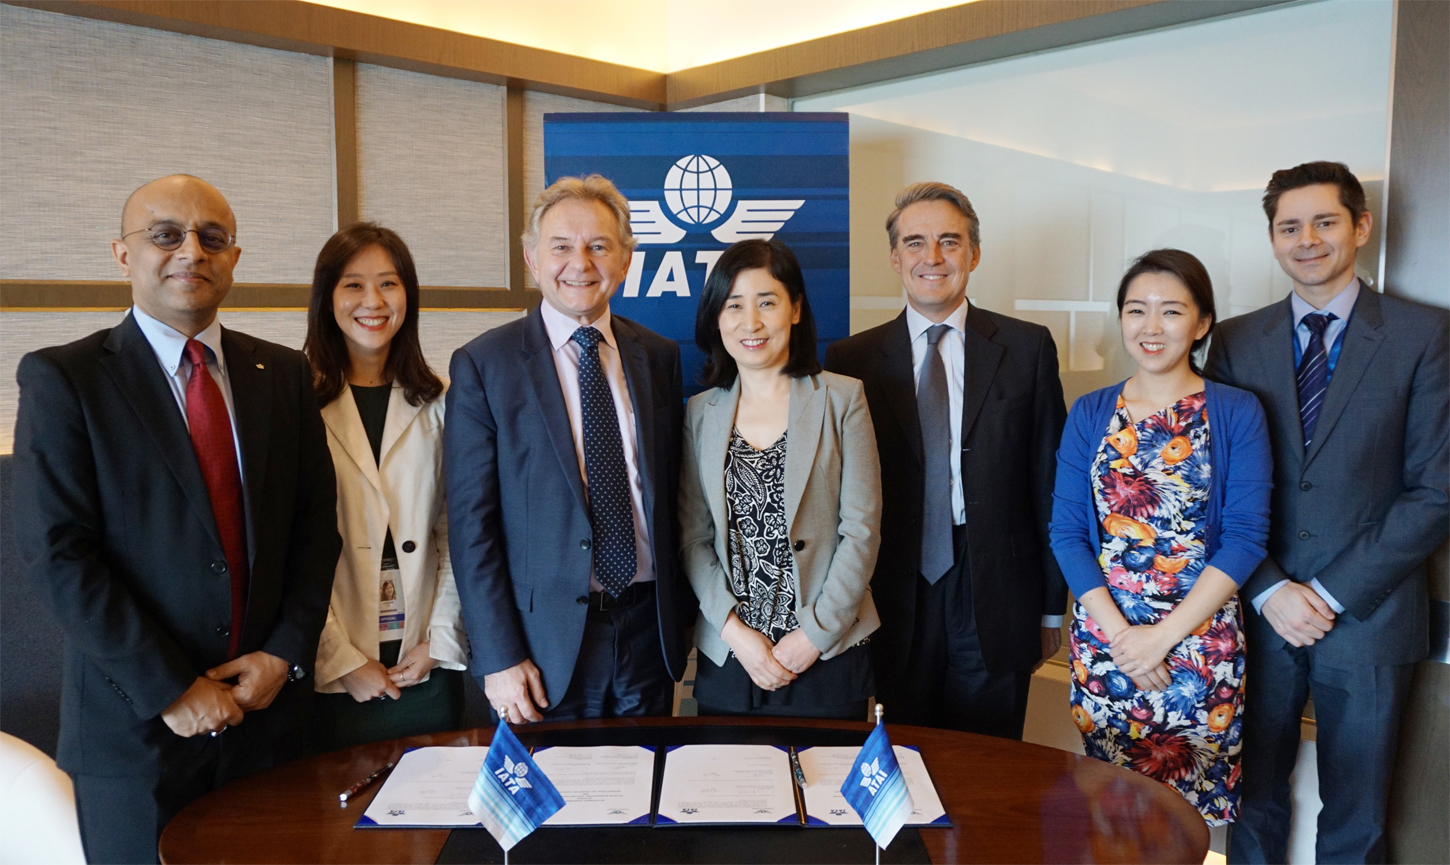 February 2018, Signed a dispatch agreement with the International Air Transport Association (IATA)